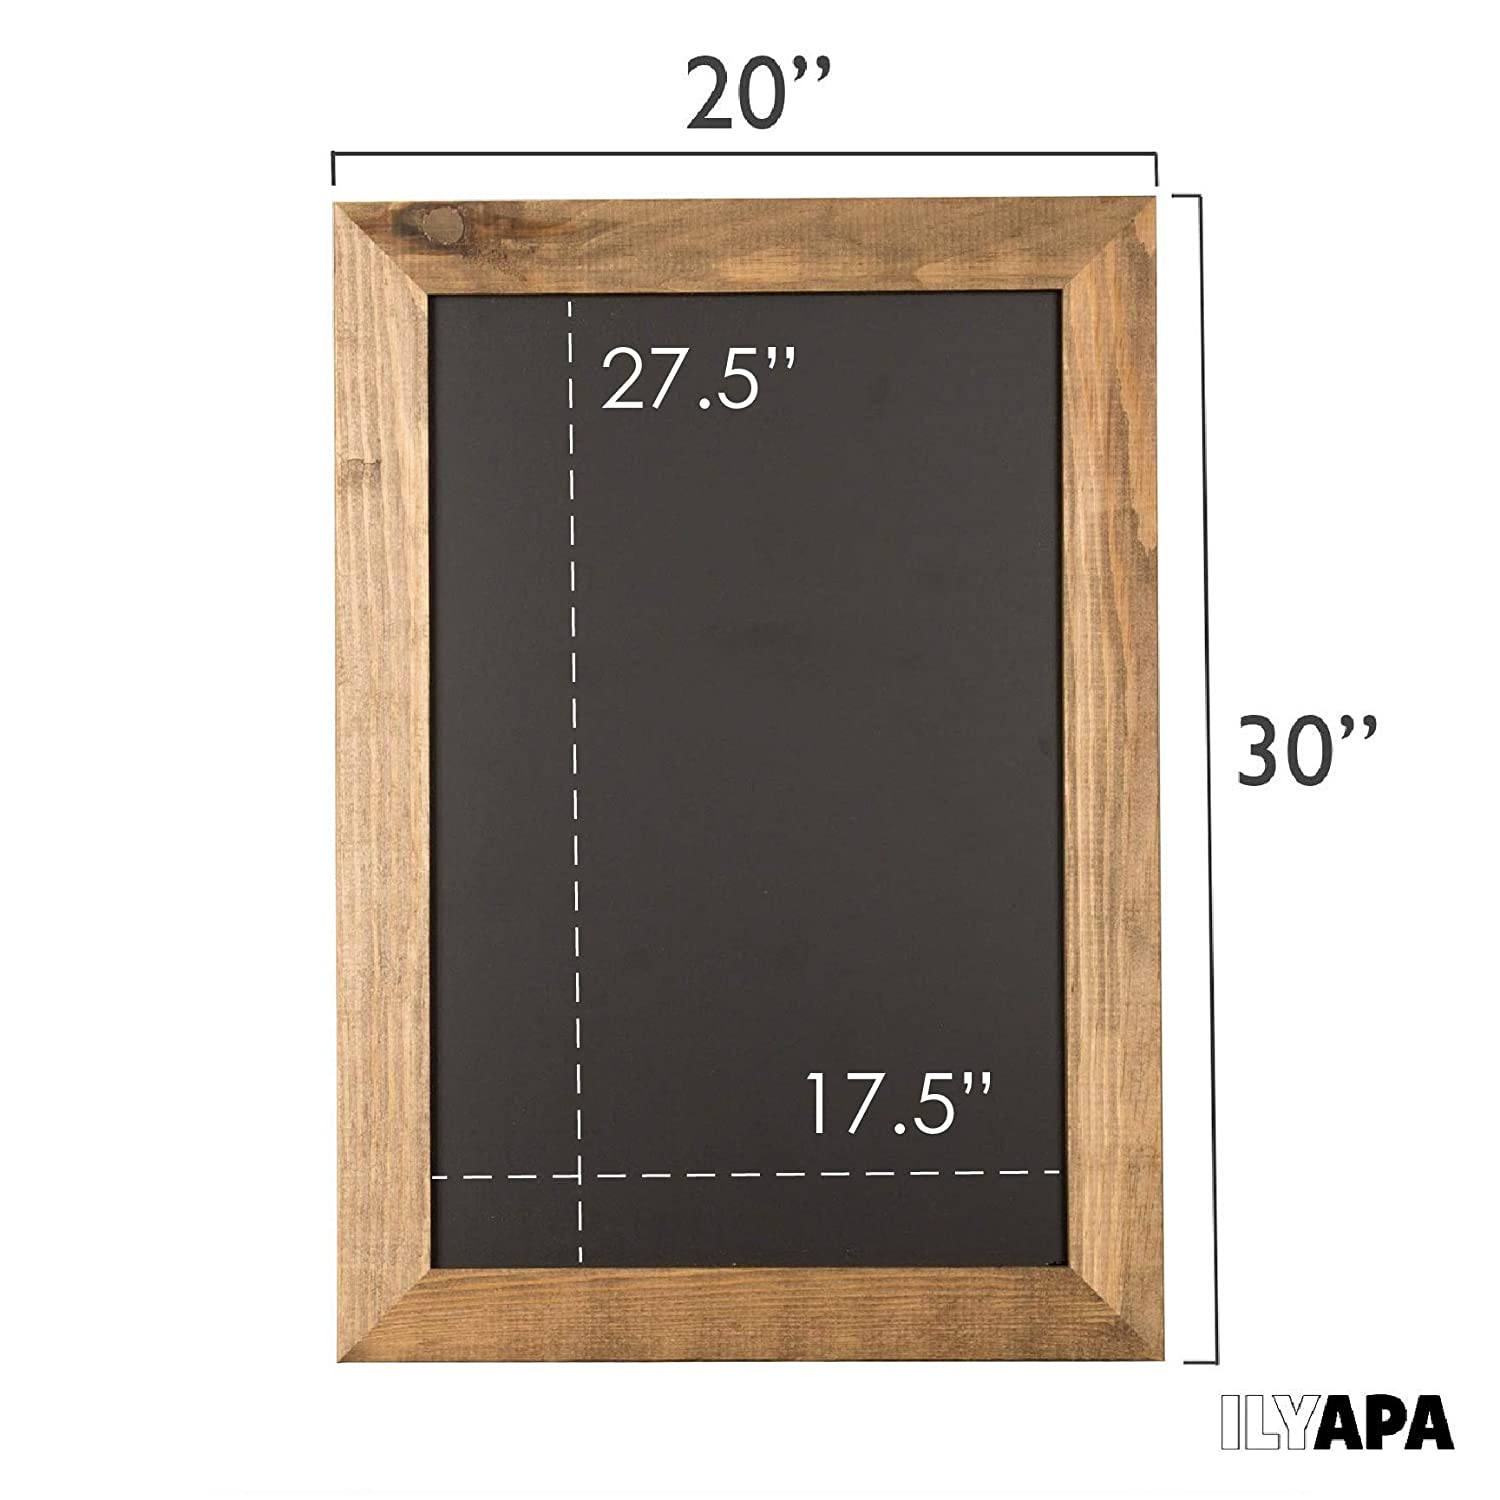 10x14 Inch Brown Framed Hanging Chalk Board for Farmhouse Decor Restaurant /& Home Wedding Rustic Wooden Magnetic Kitchen Chalkboard Sign